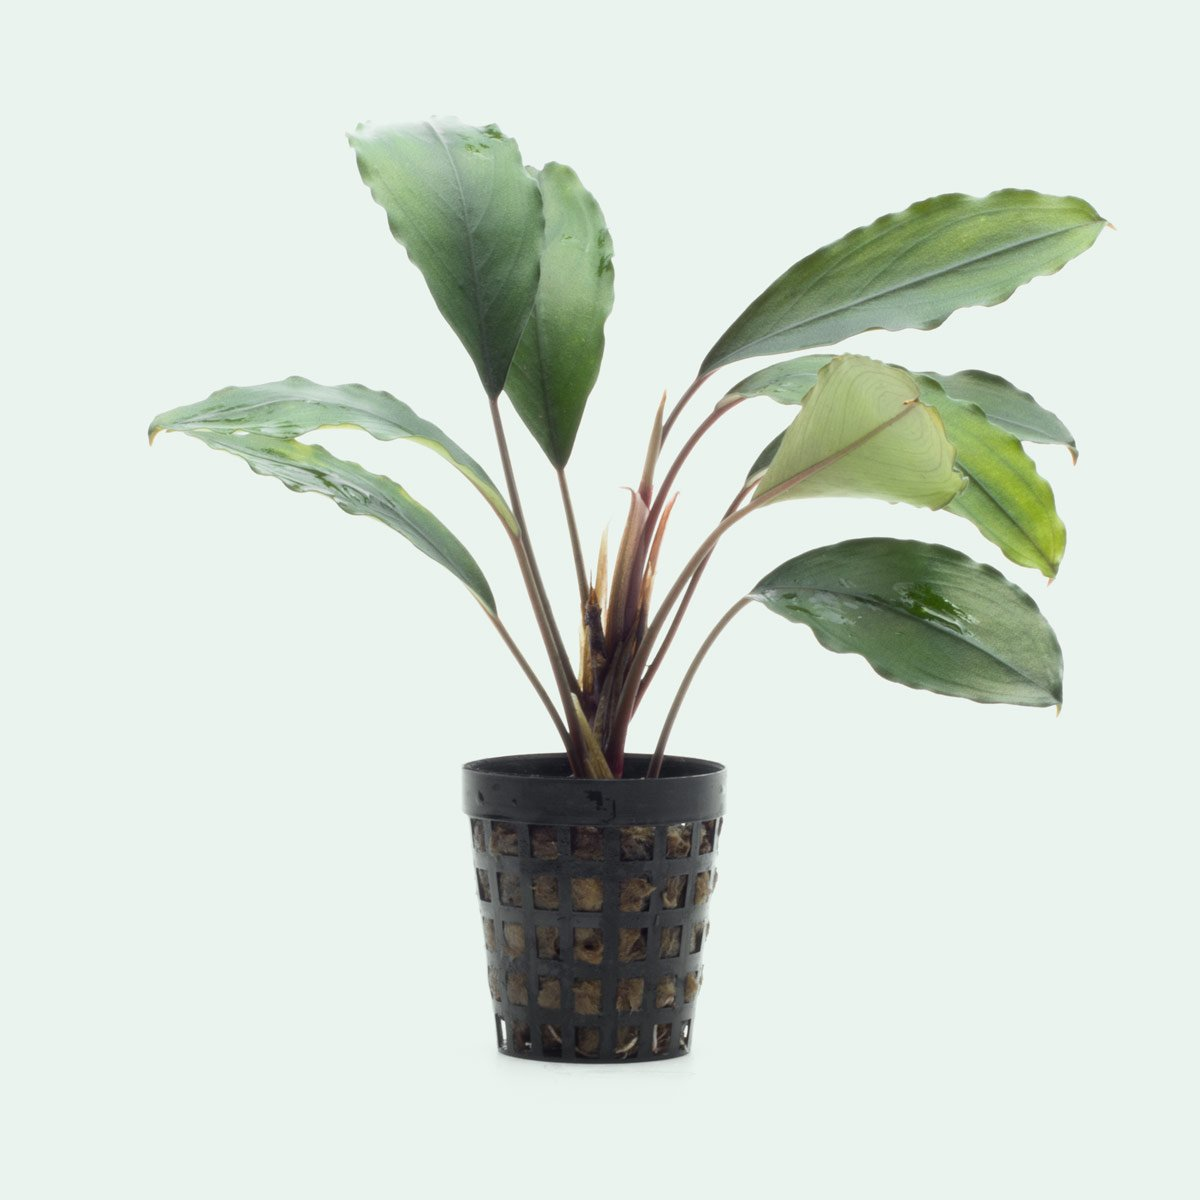 Shop Bucephalandra Sekadau Aquatic Plants - Glass Aqua